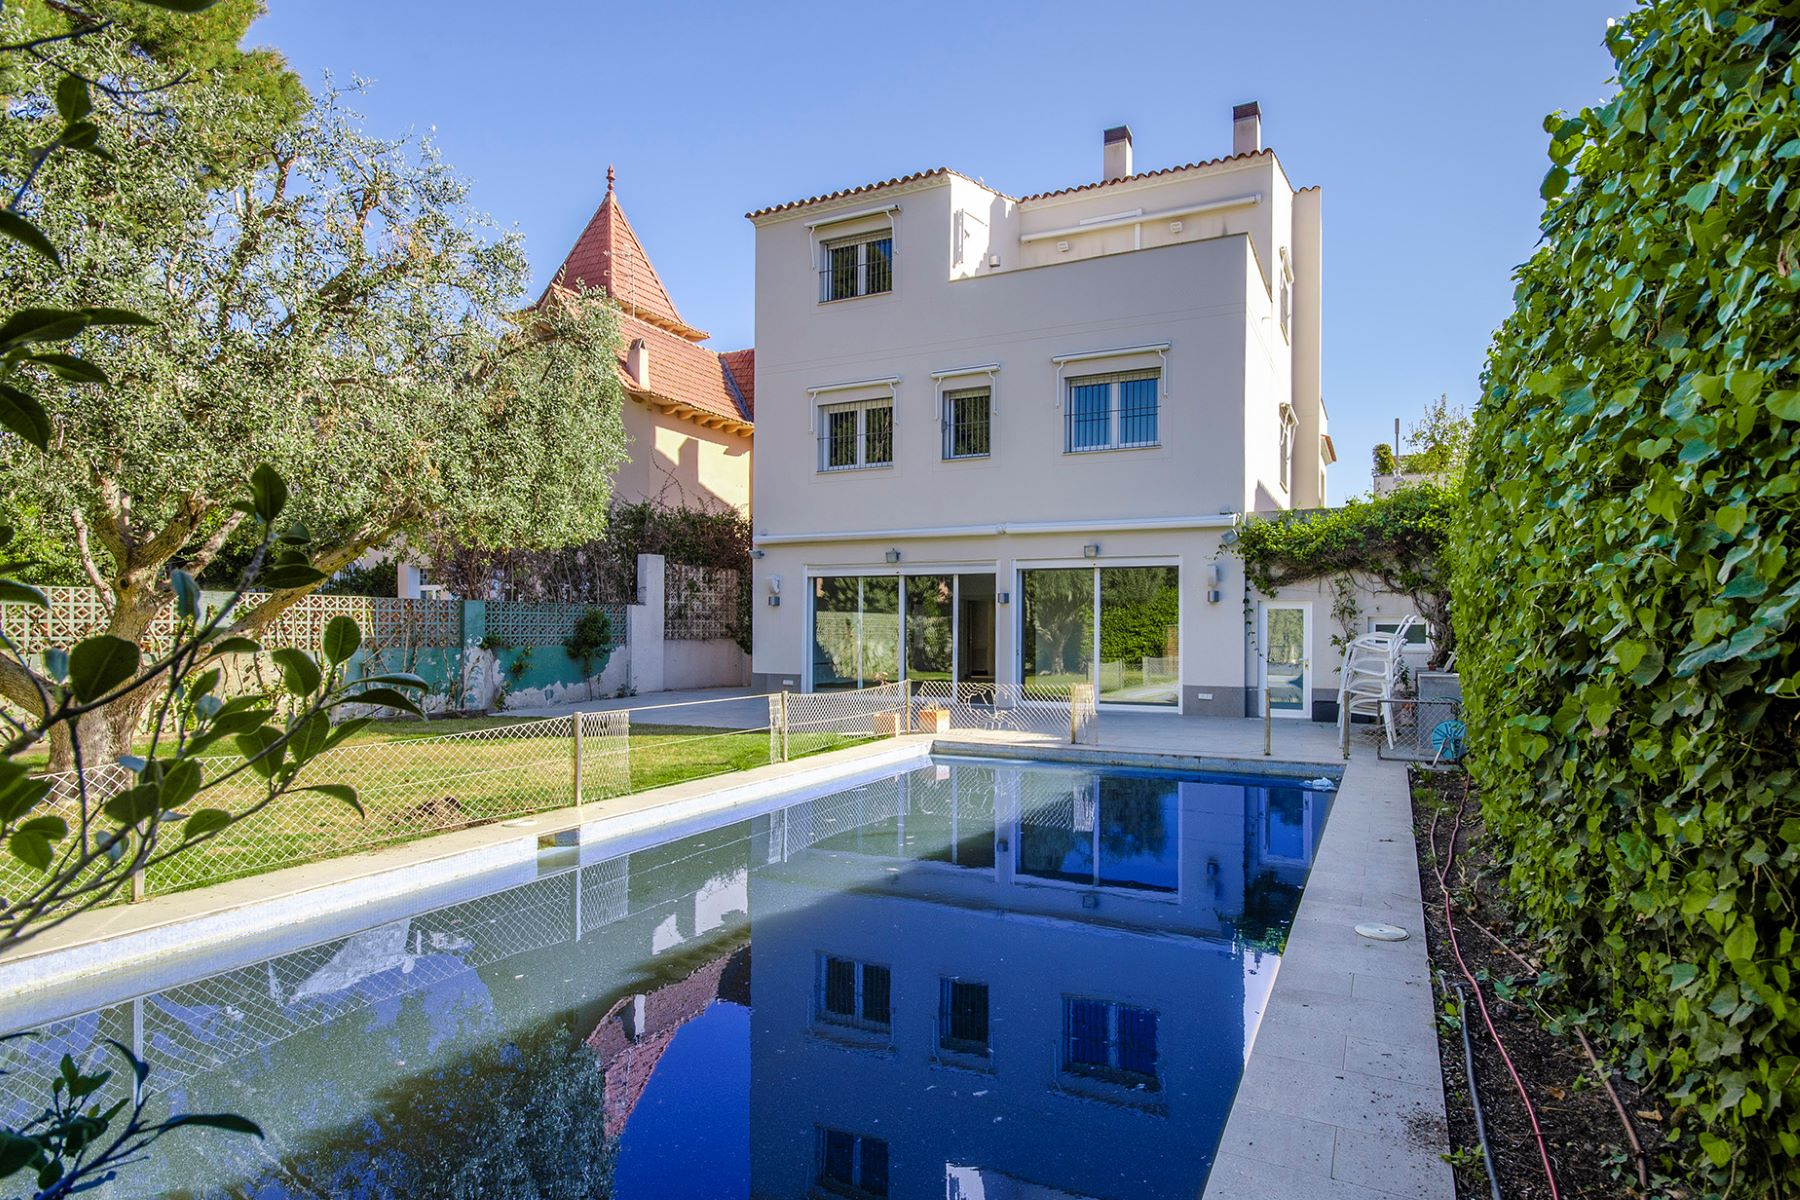 Single Family Home for Sale at Unique opportunity to acquire a luxury villa in Terramar, Sitges Sitges, Barcelona 08870 Spain